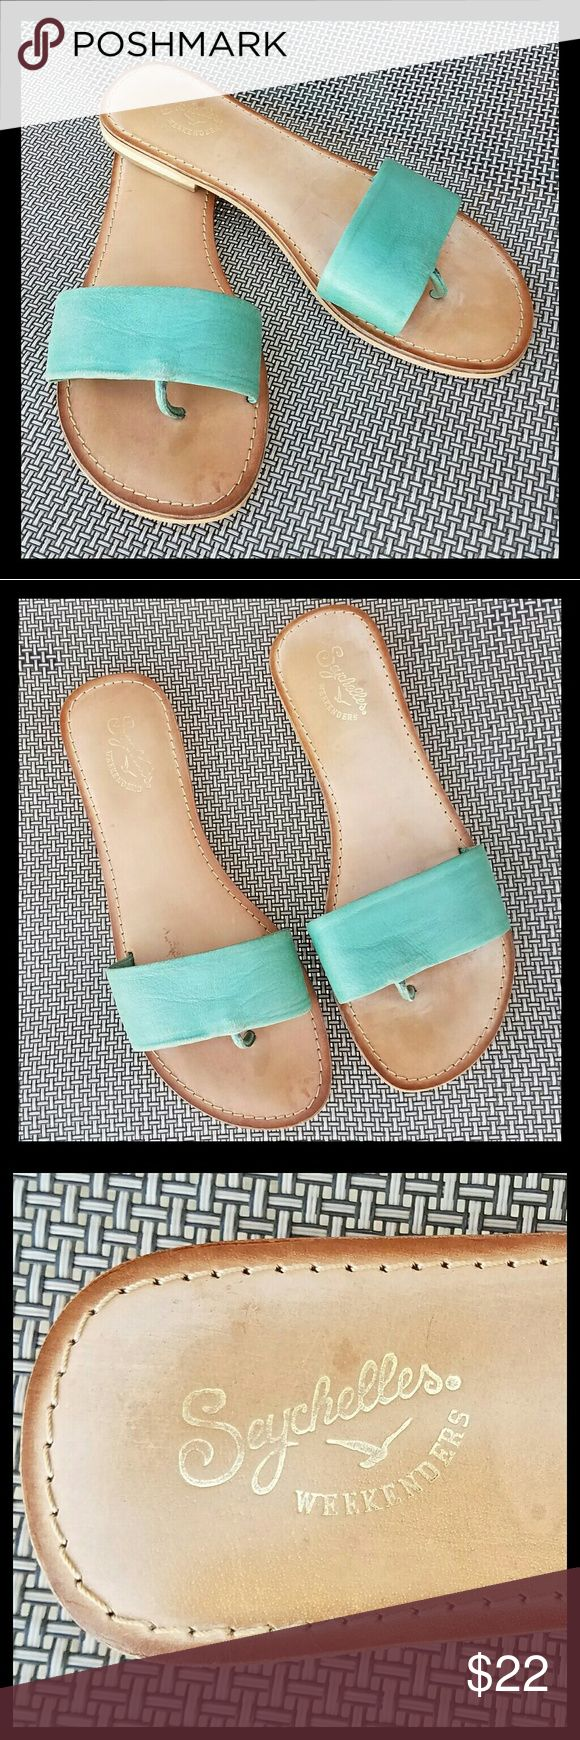 Seychelles Weekenders Sandals Leather Seychelles sandals w/leather foot bed. Signs of light wear. Good condition. Seychelles Shoes Sandals